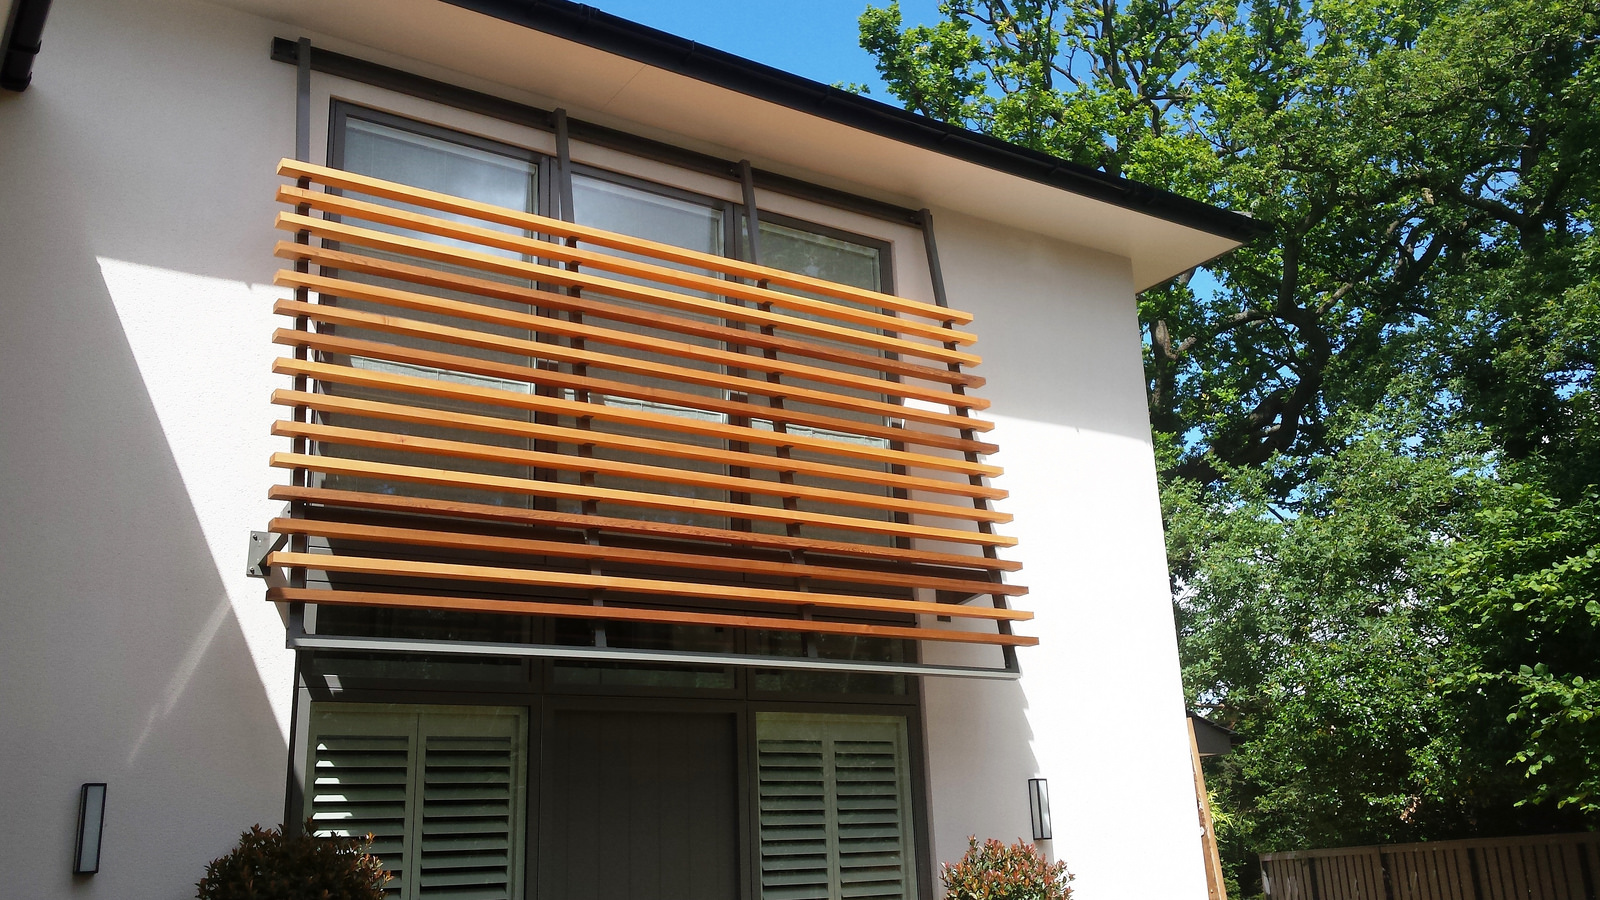 timber brise soleil nationwide louvre company. Black Bedroom Furniture Sets. Home Design Ideas